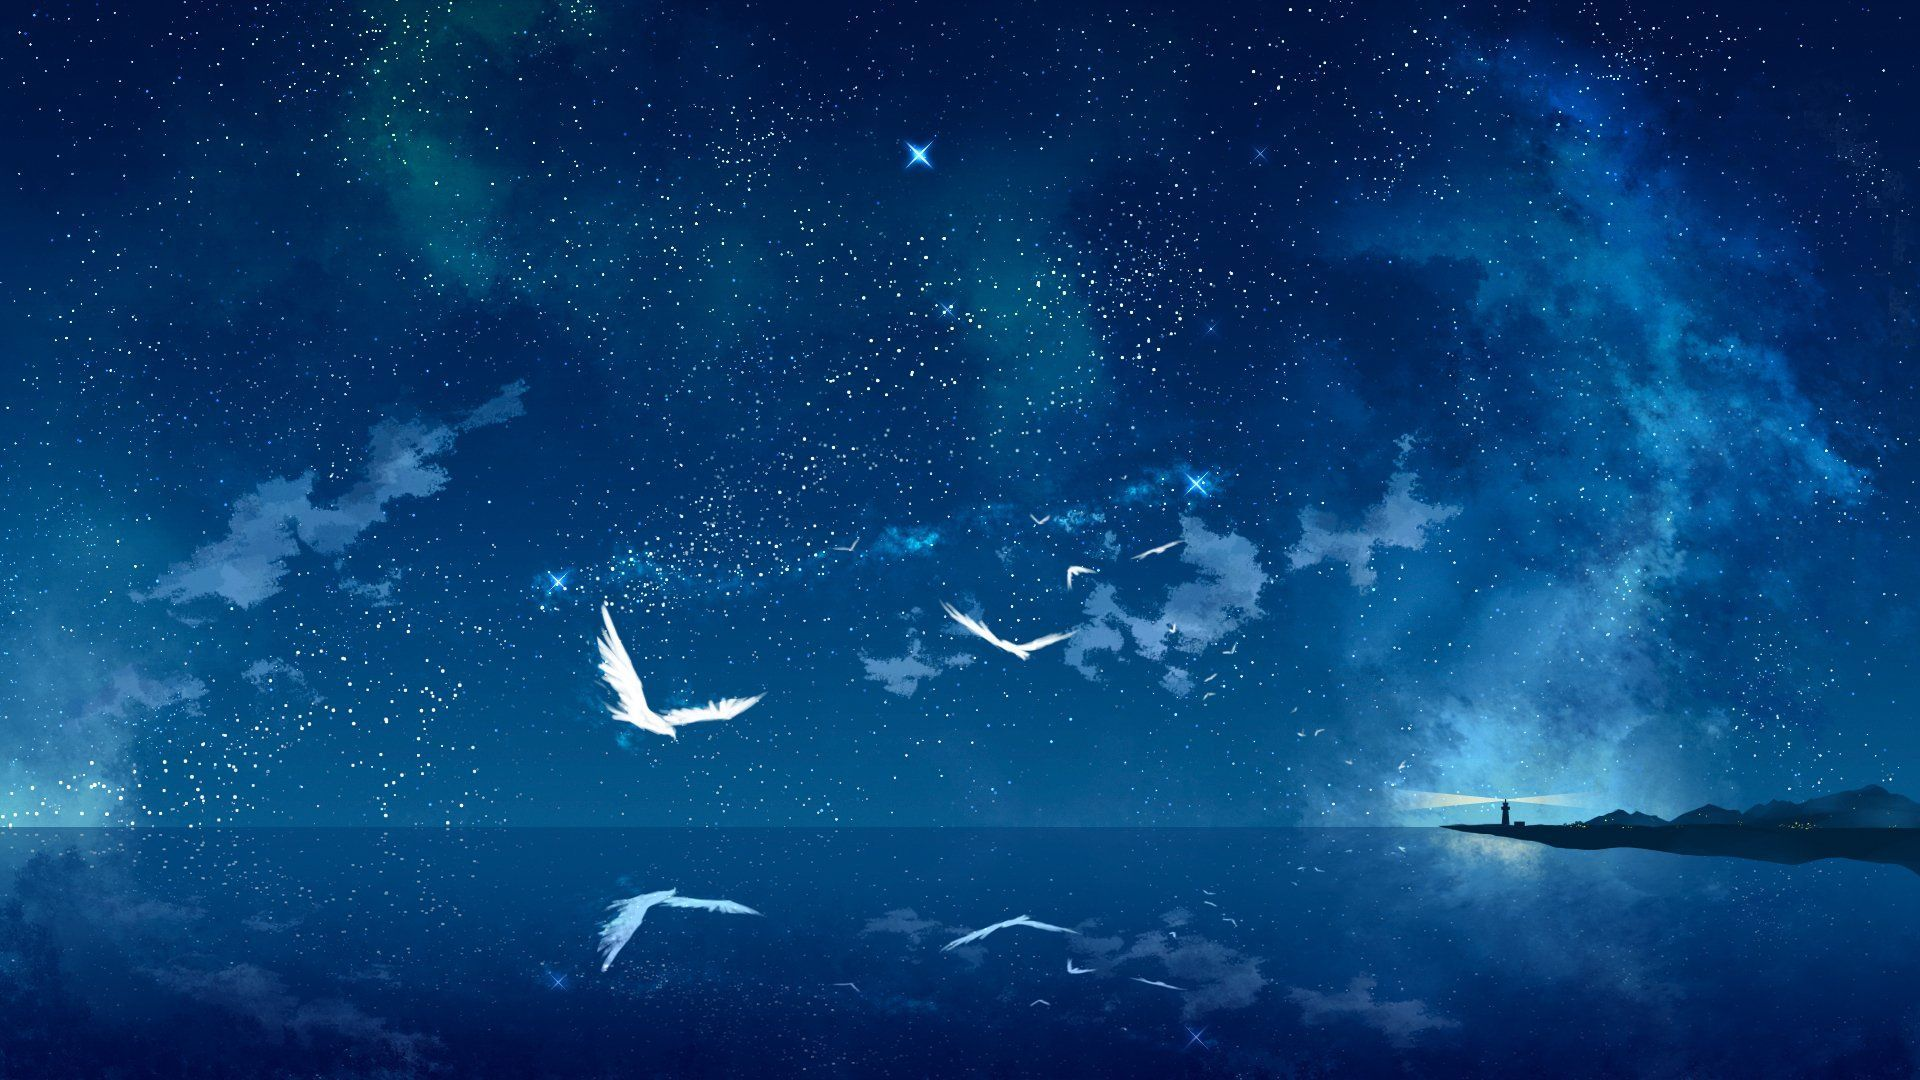 1920x1080 388 Starry Sky Hd Wallpapers Background Images